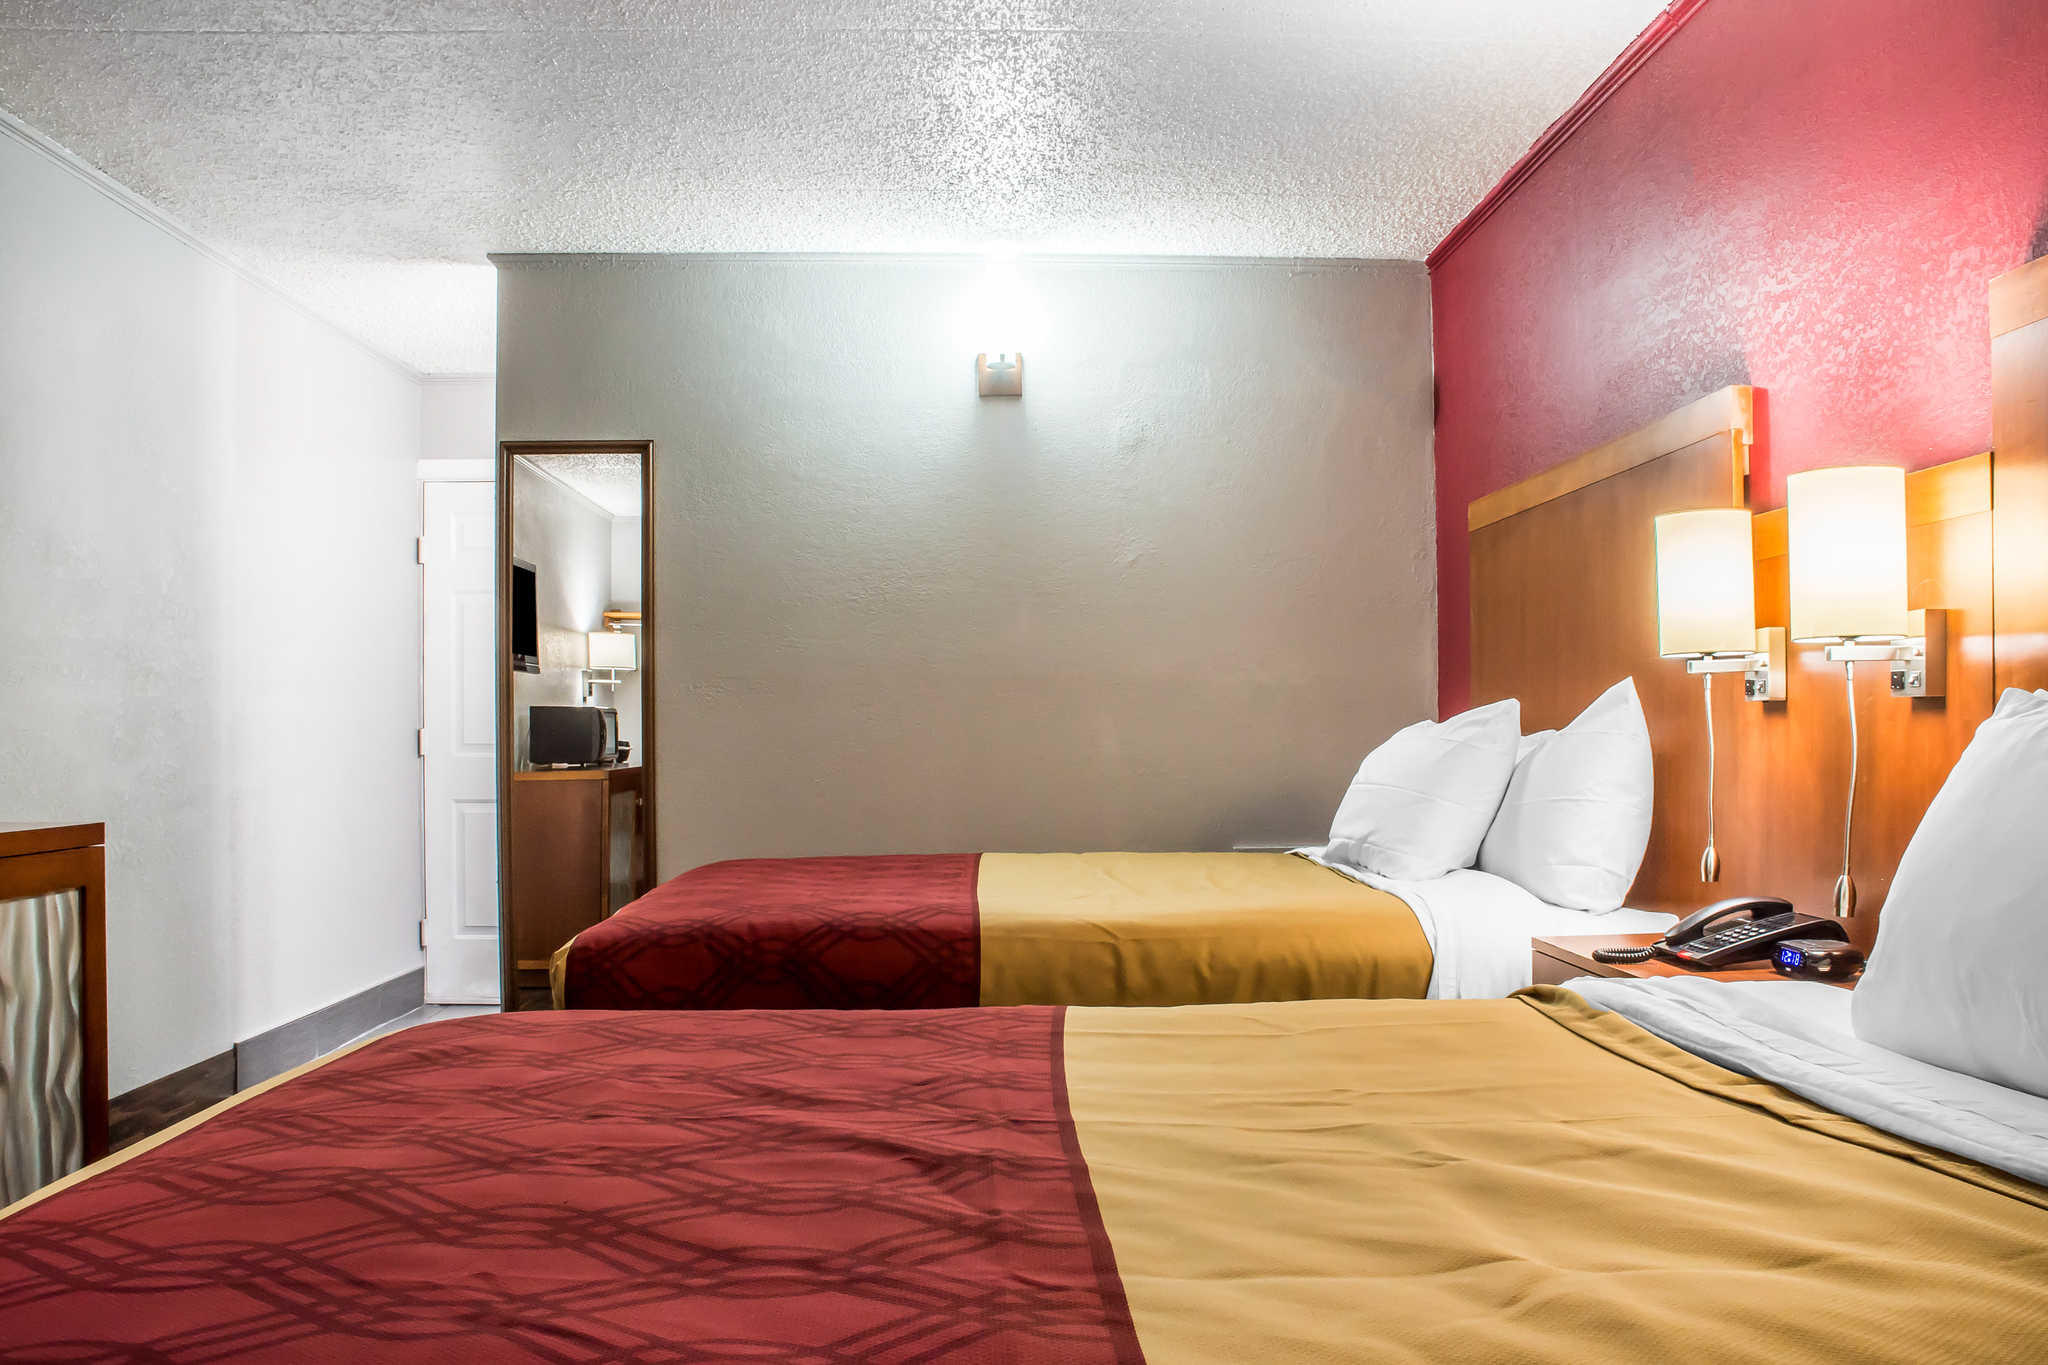 Hotel Rooms In Brockport Ny